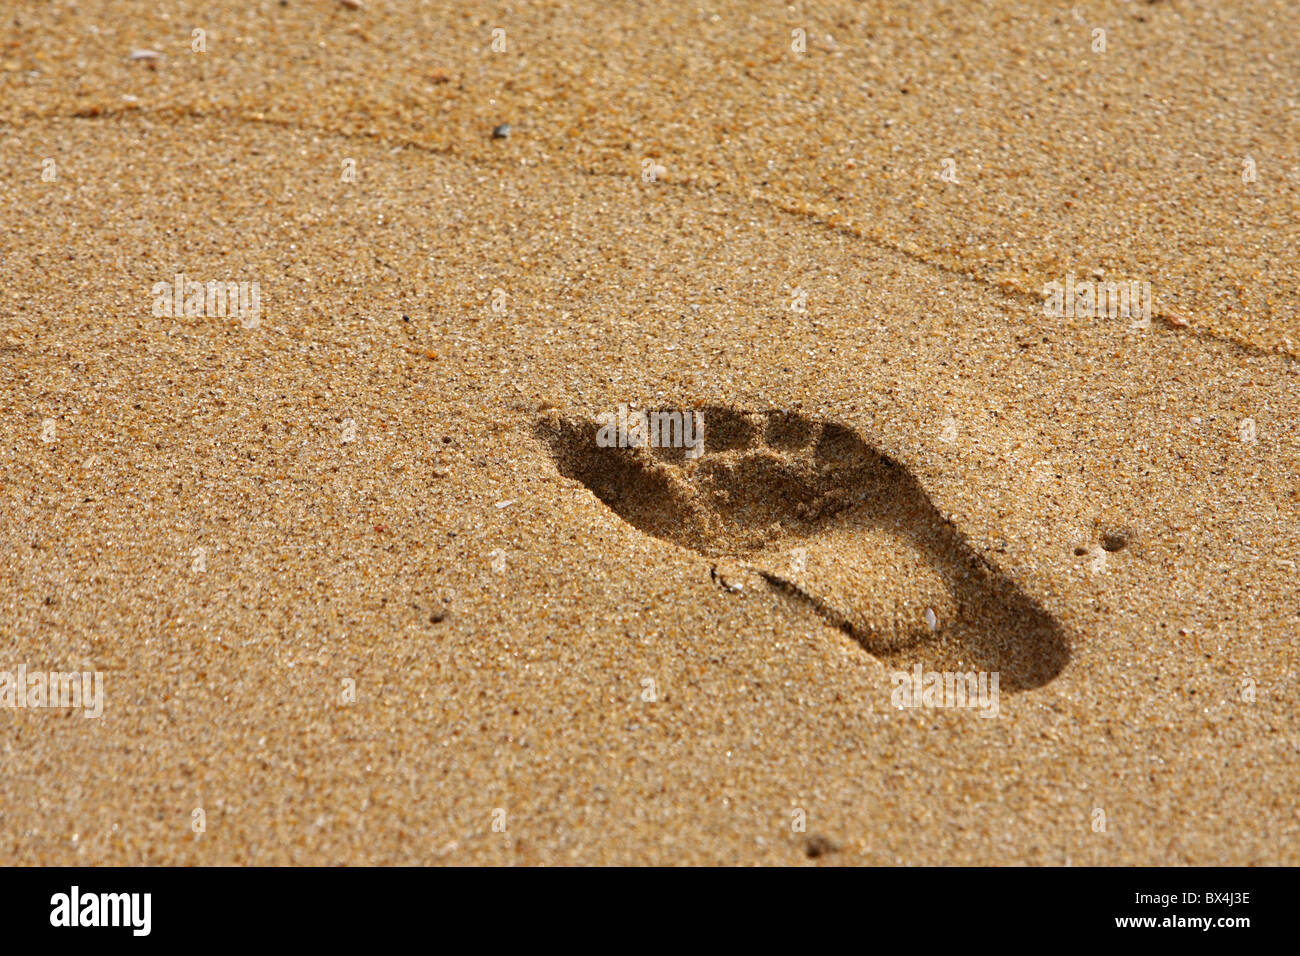 A footprint in the sand - Stock Image